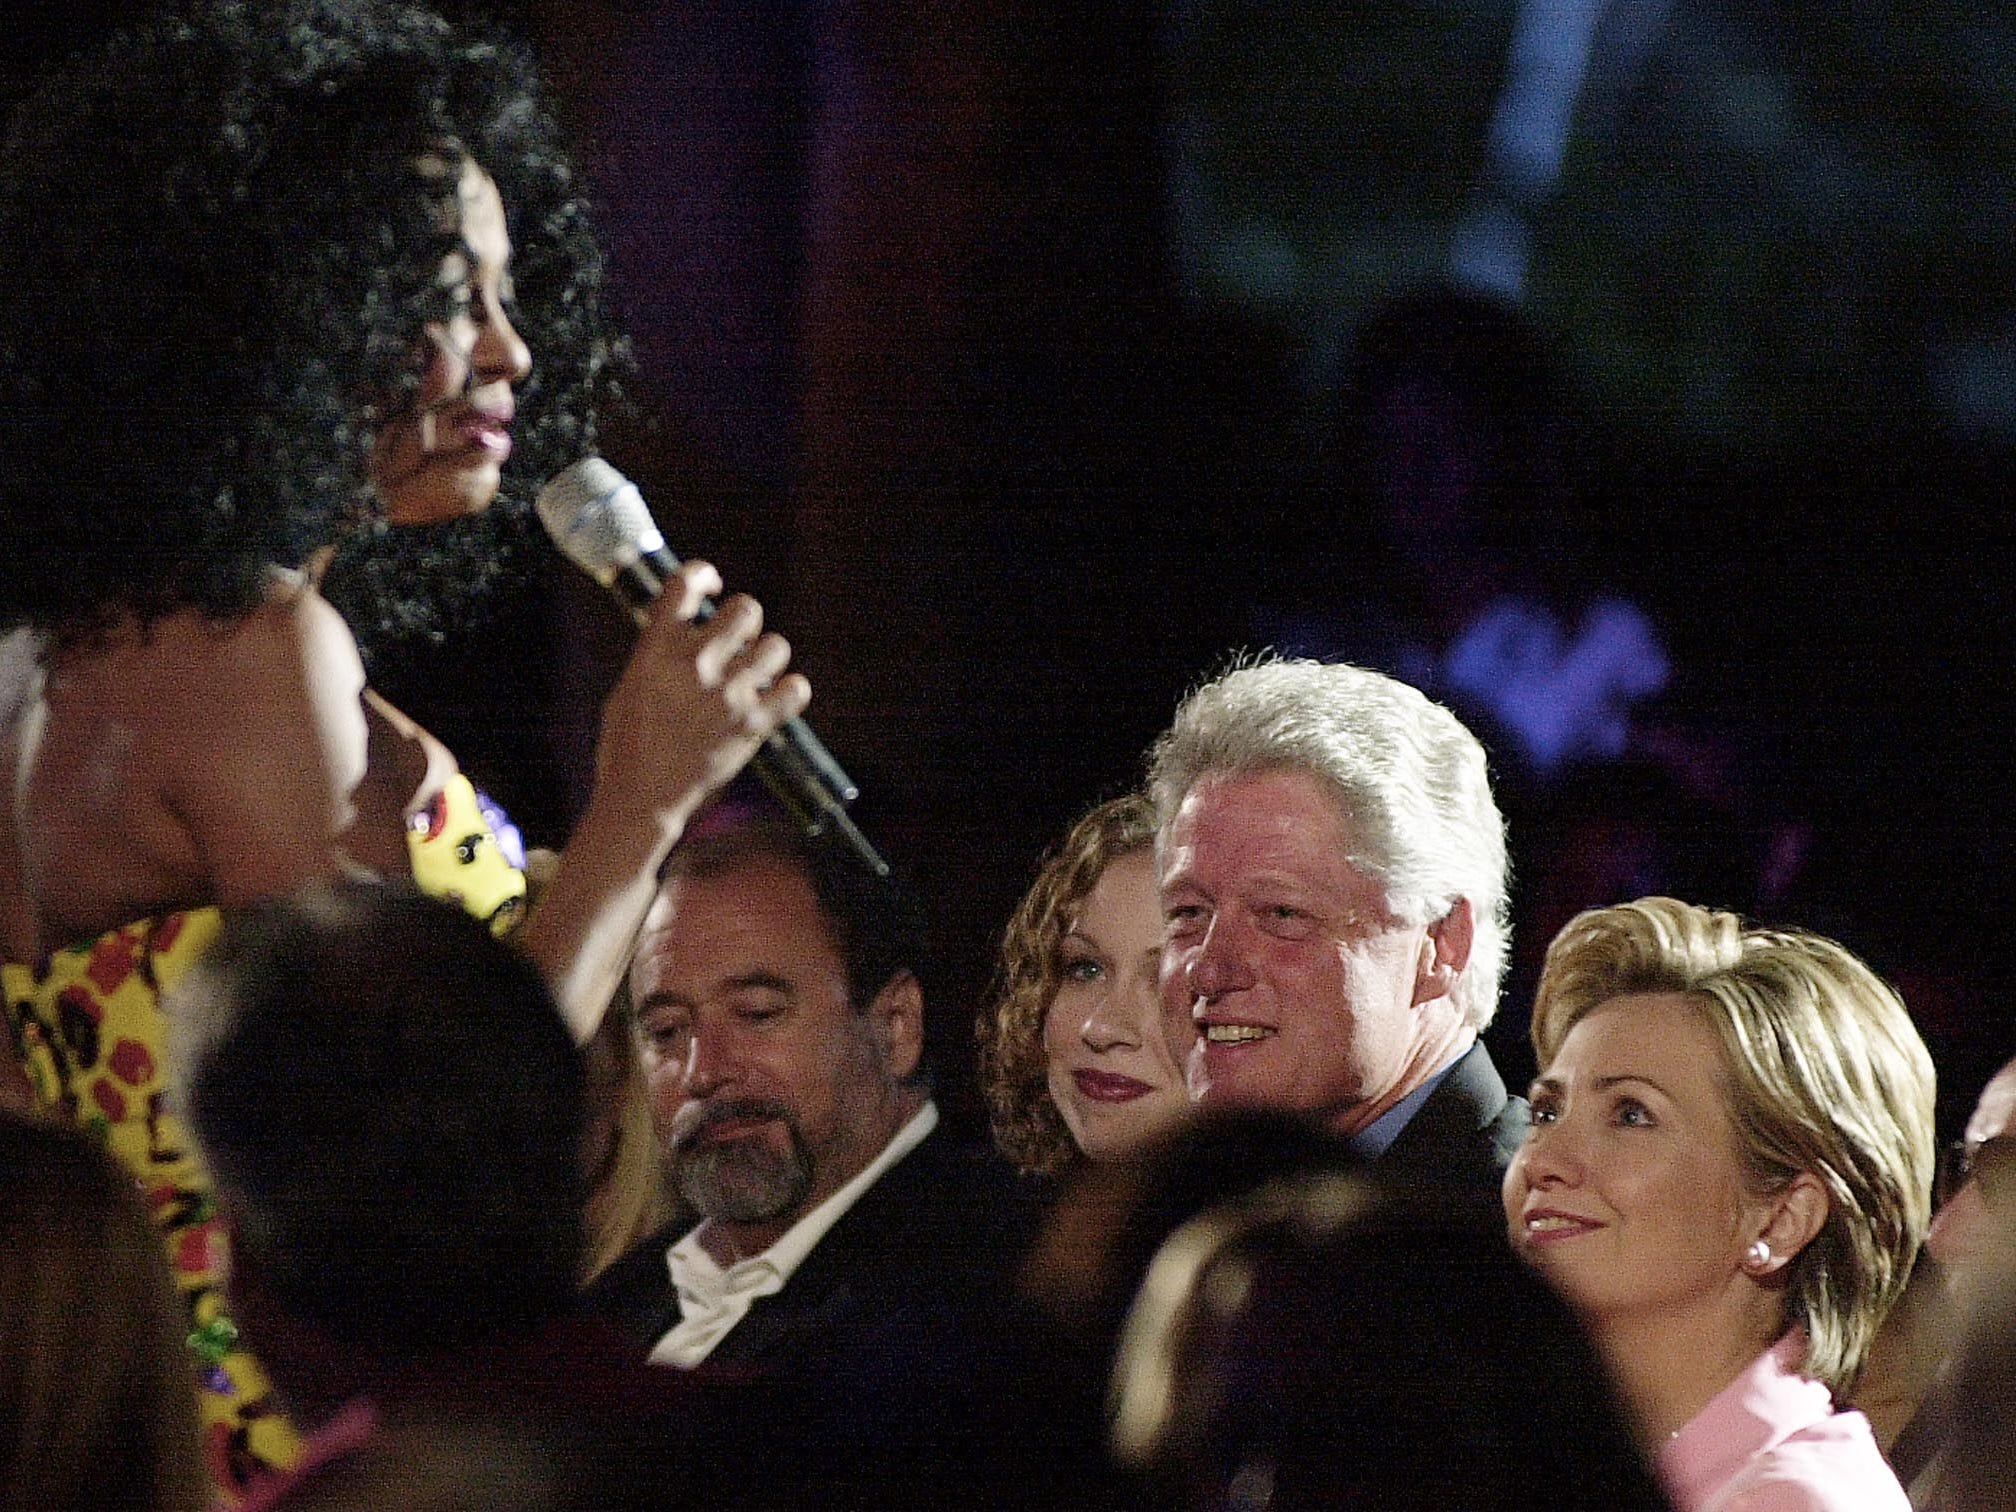 President Bill Clinton and first lady Hillary Clinton listen to Diana Ross sing at the Gala Hollywood Farewell Salute to President Clinton on Aug. 12, 2000 in Hollywood.